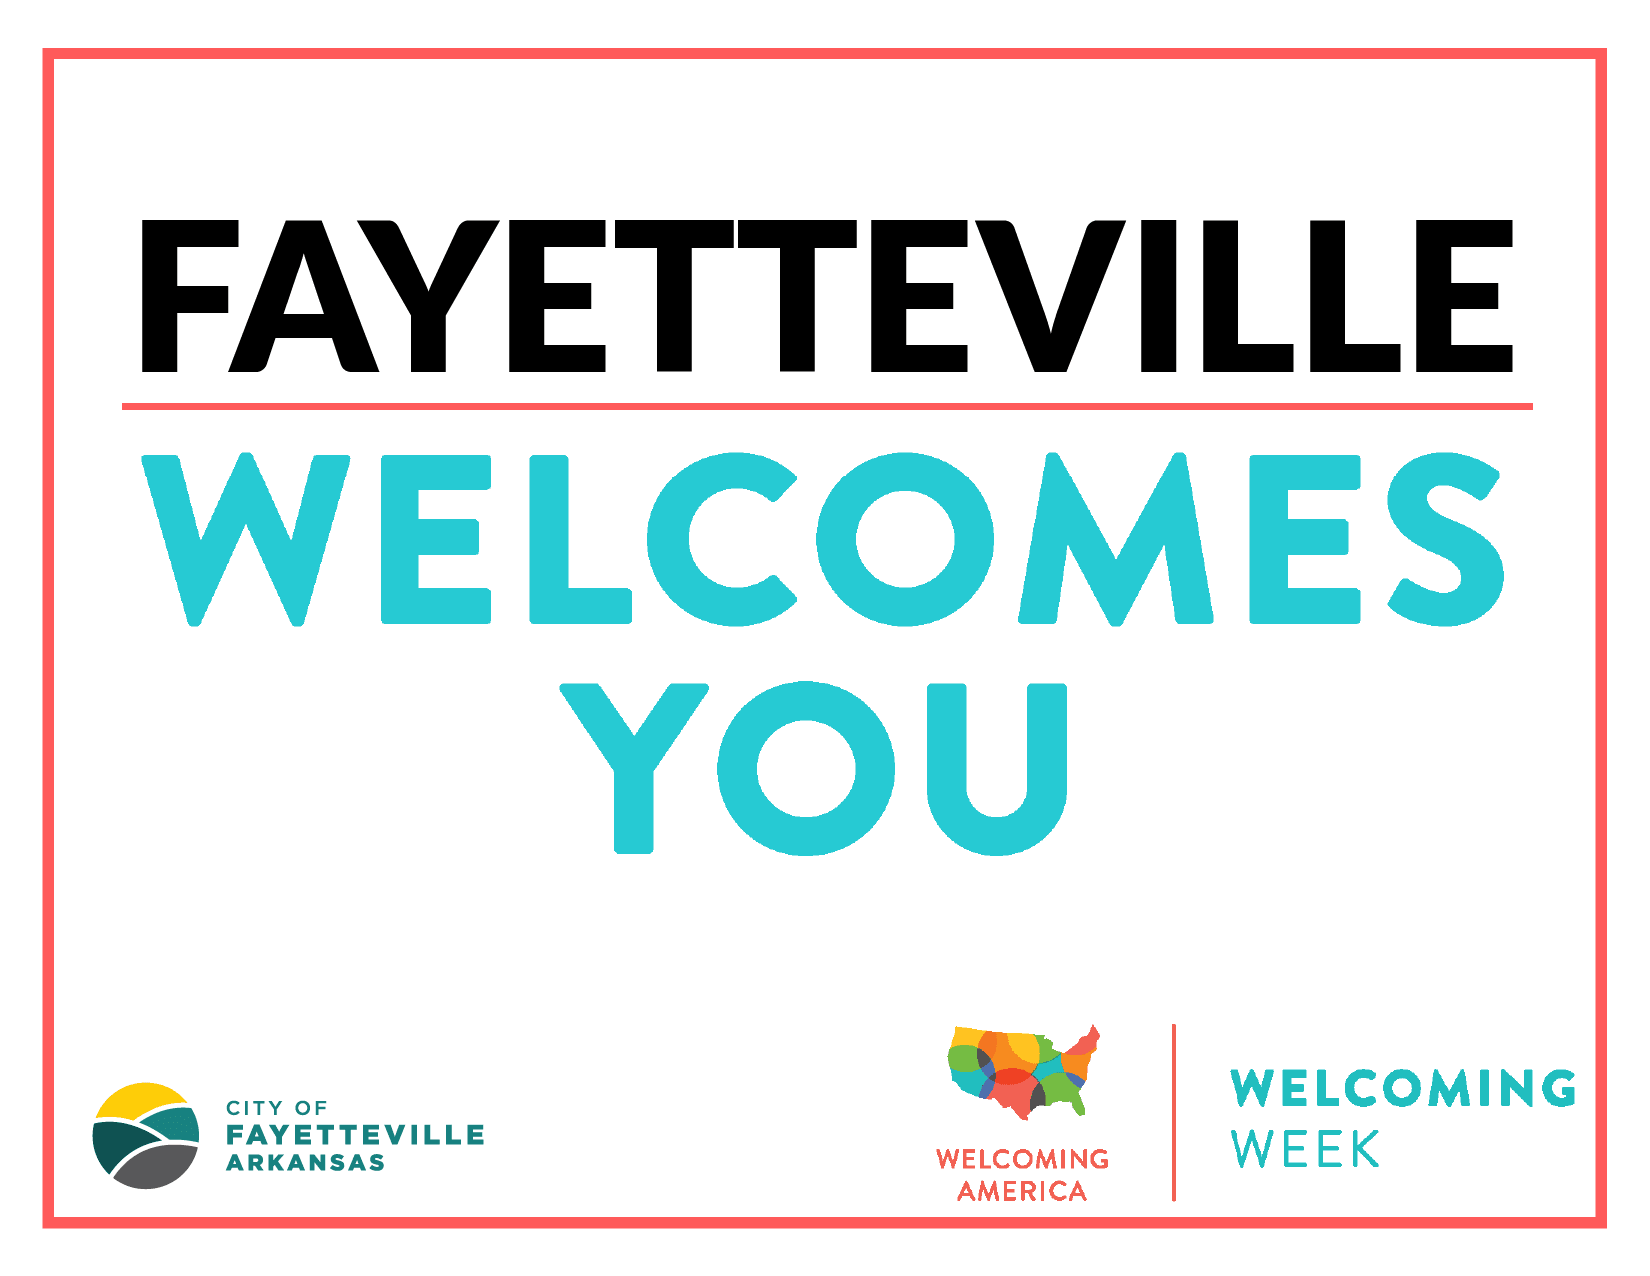 Fayetteville Welcomes You sign